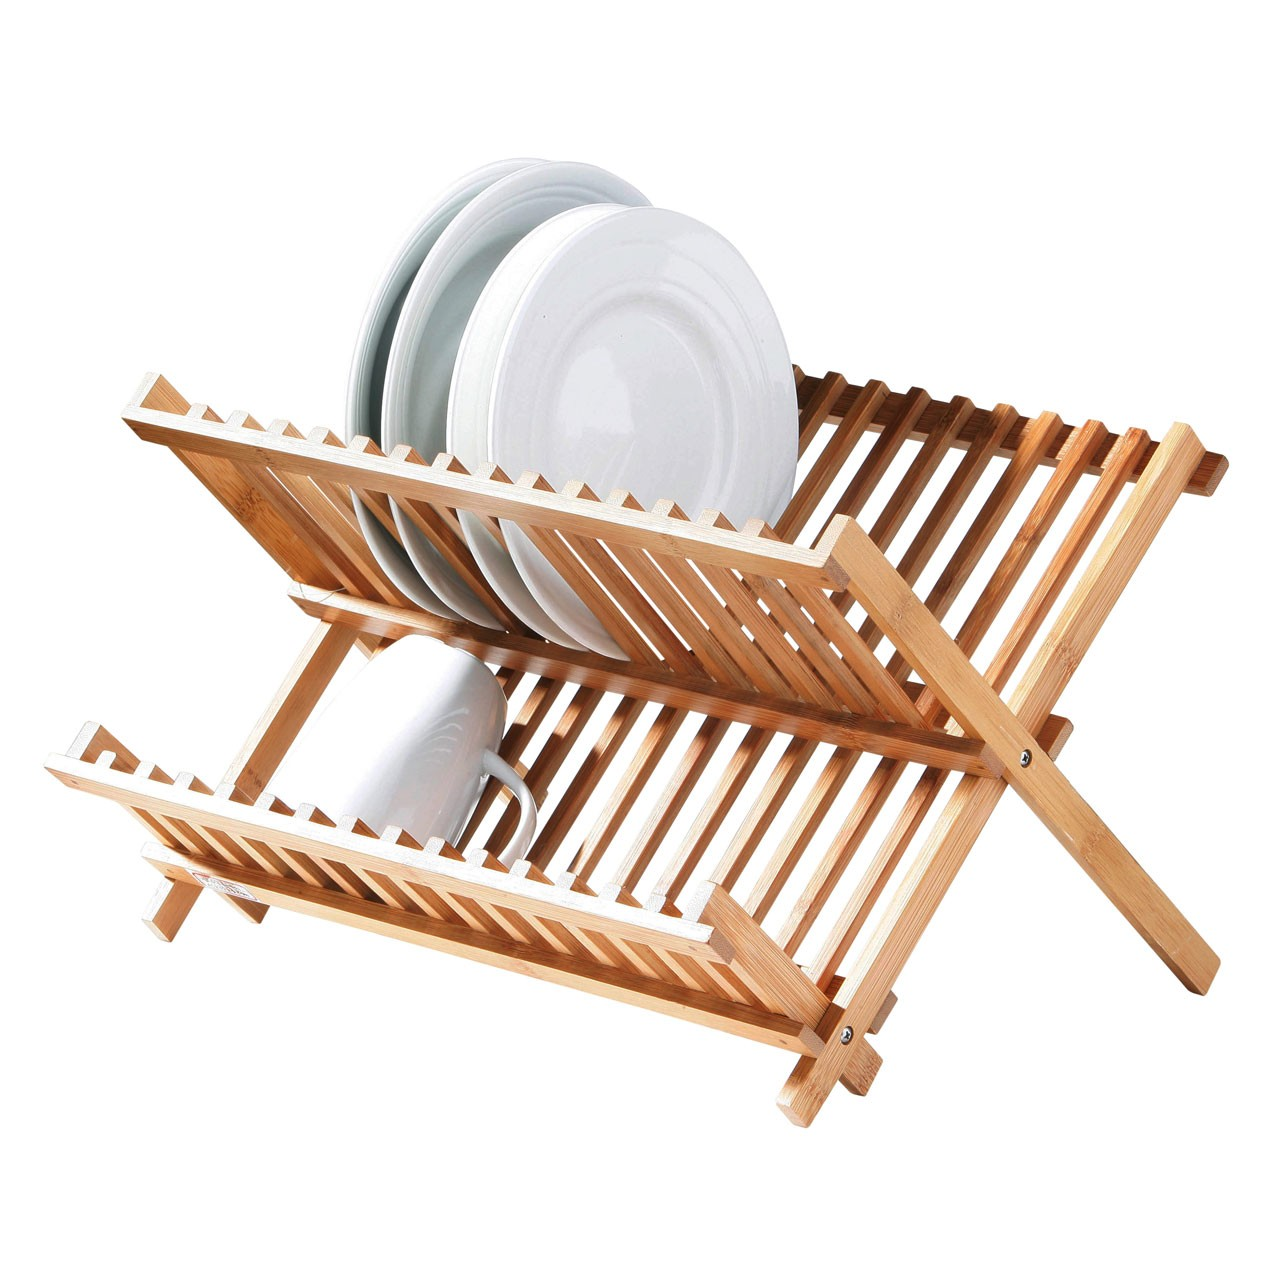 Bamboo Folding Dish Rack - Natural